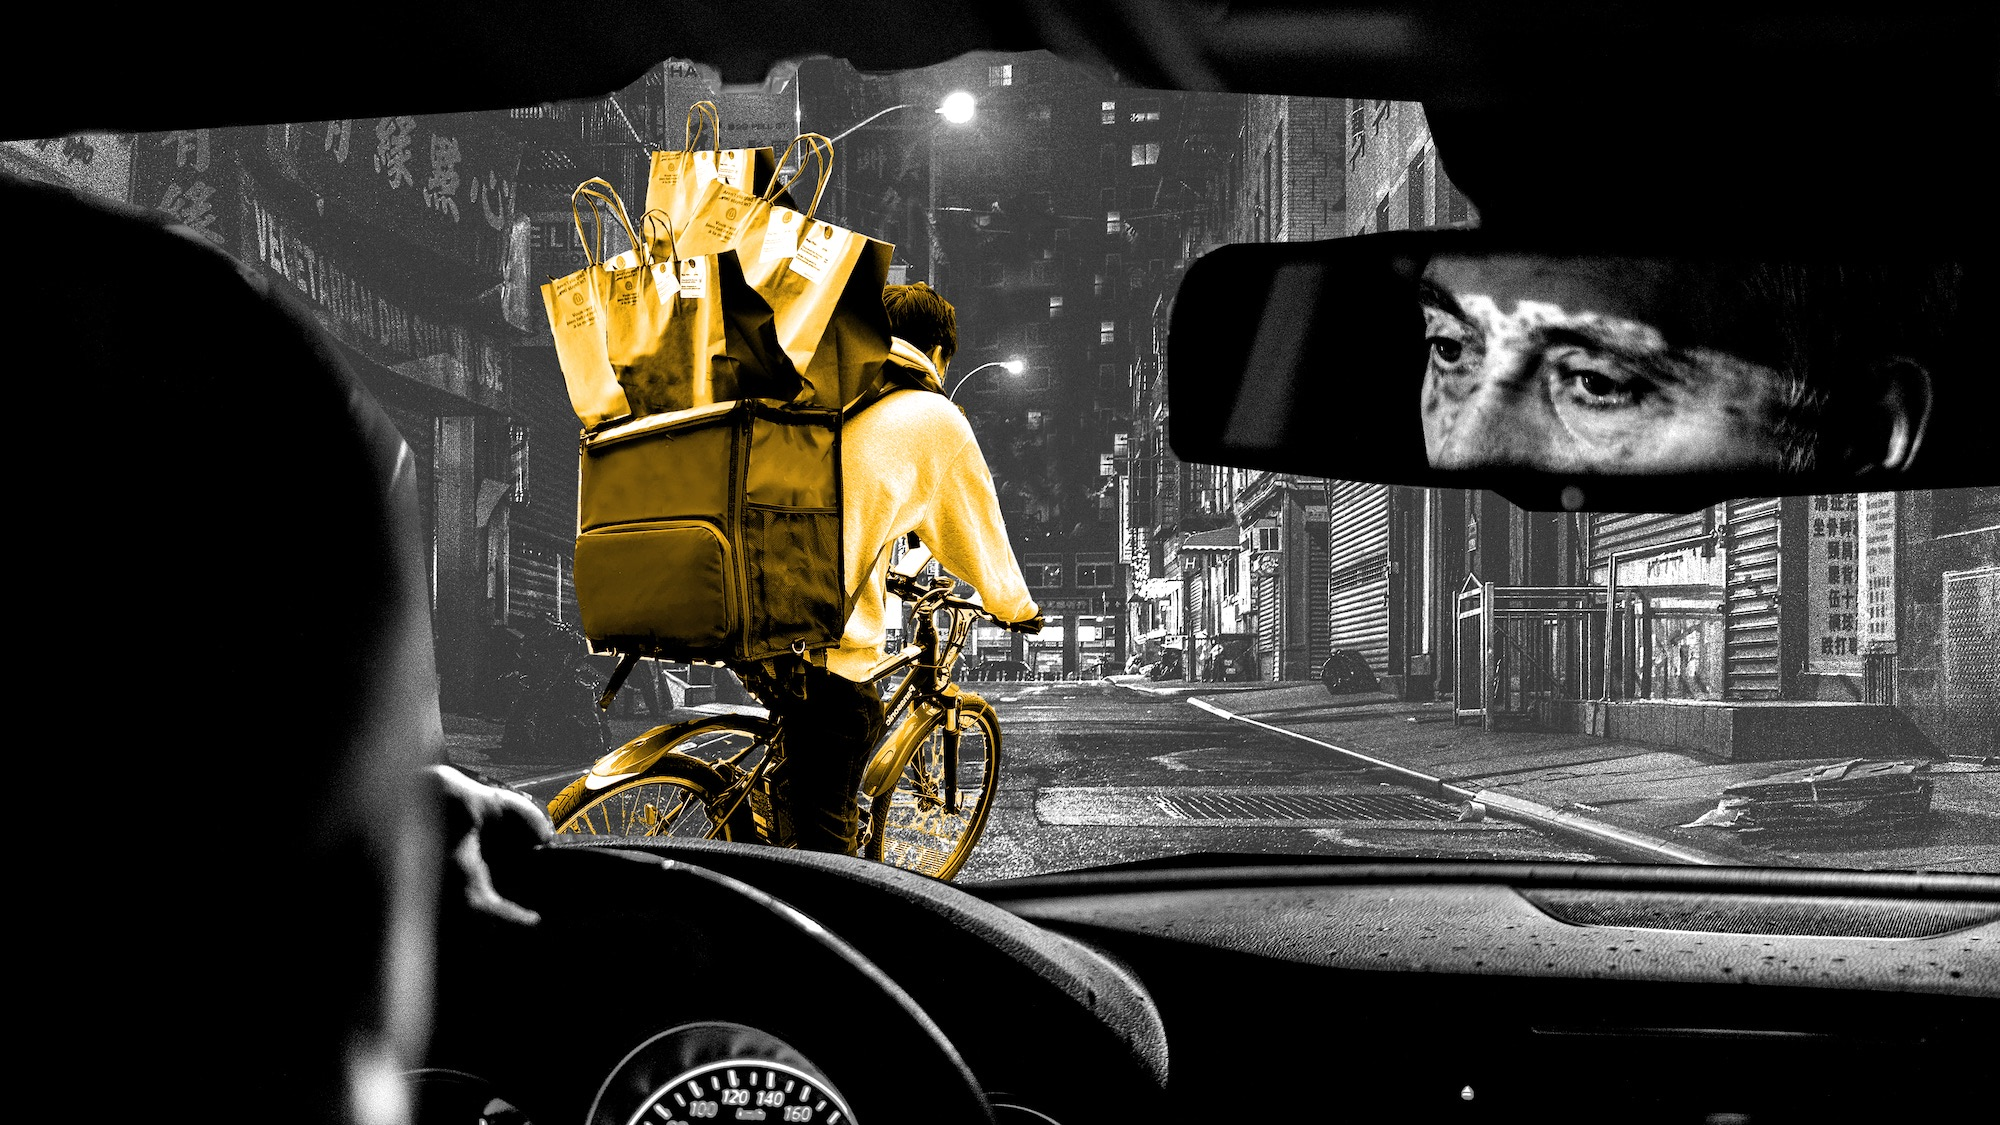 Illustration: back seat of a car looking through the windscreen. A gig worker with package deliveries is in front of the car.